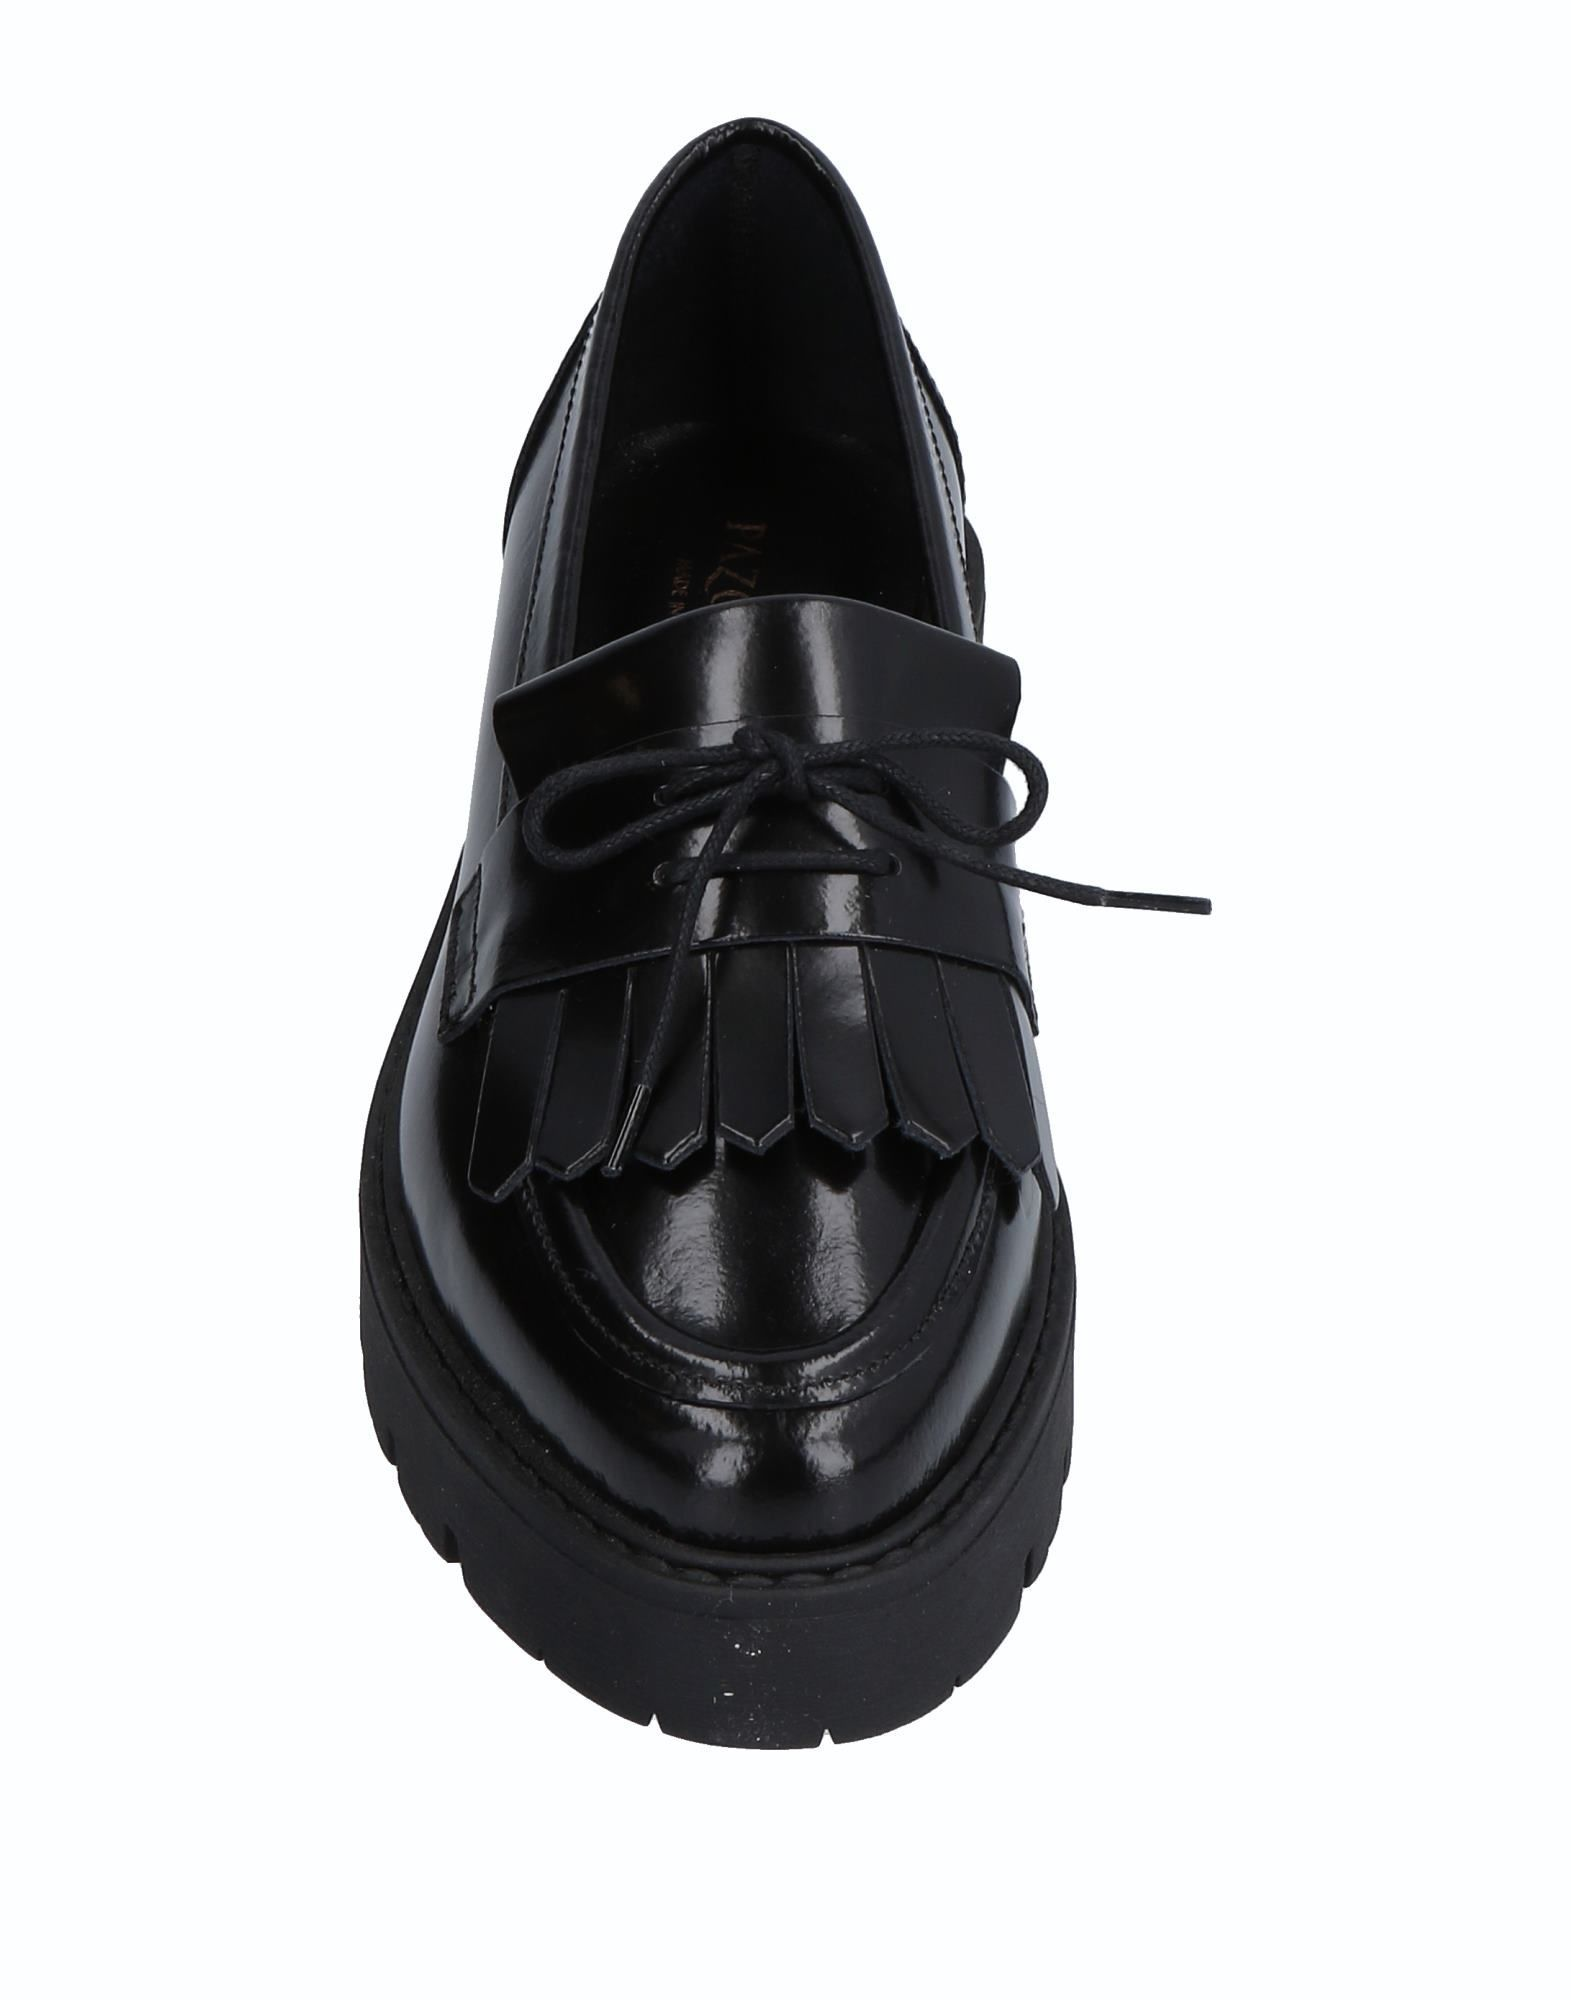 FOOTWEAR Carlo Pazolini Black Woman Leather